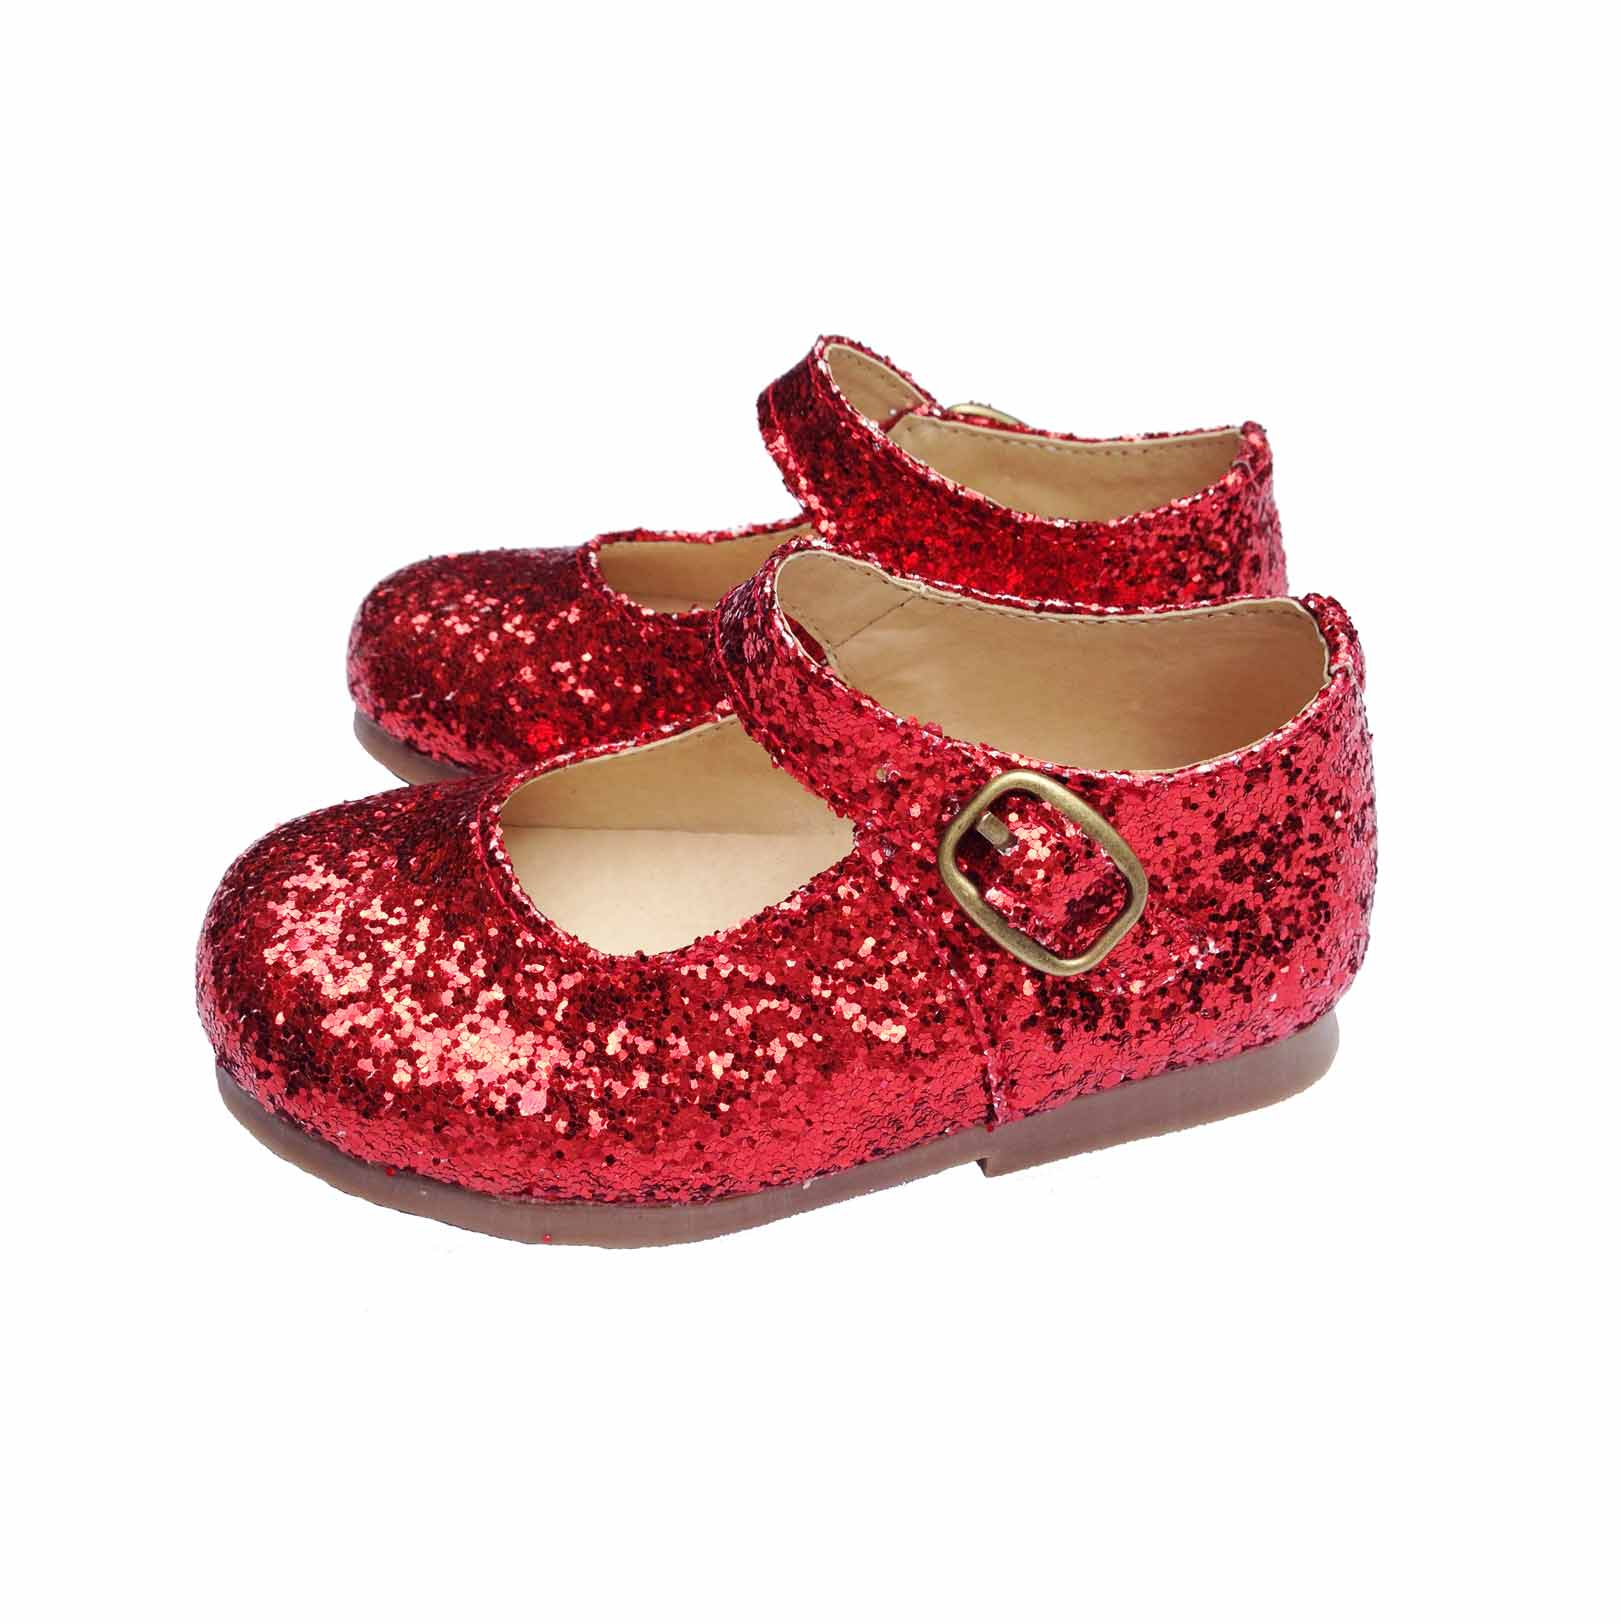 Red Toddler Shoes Size